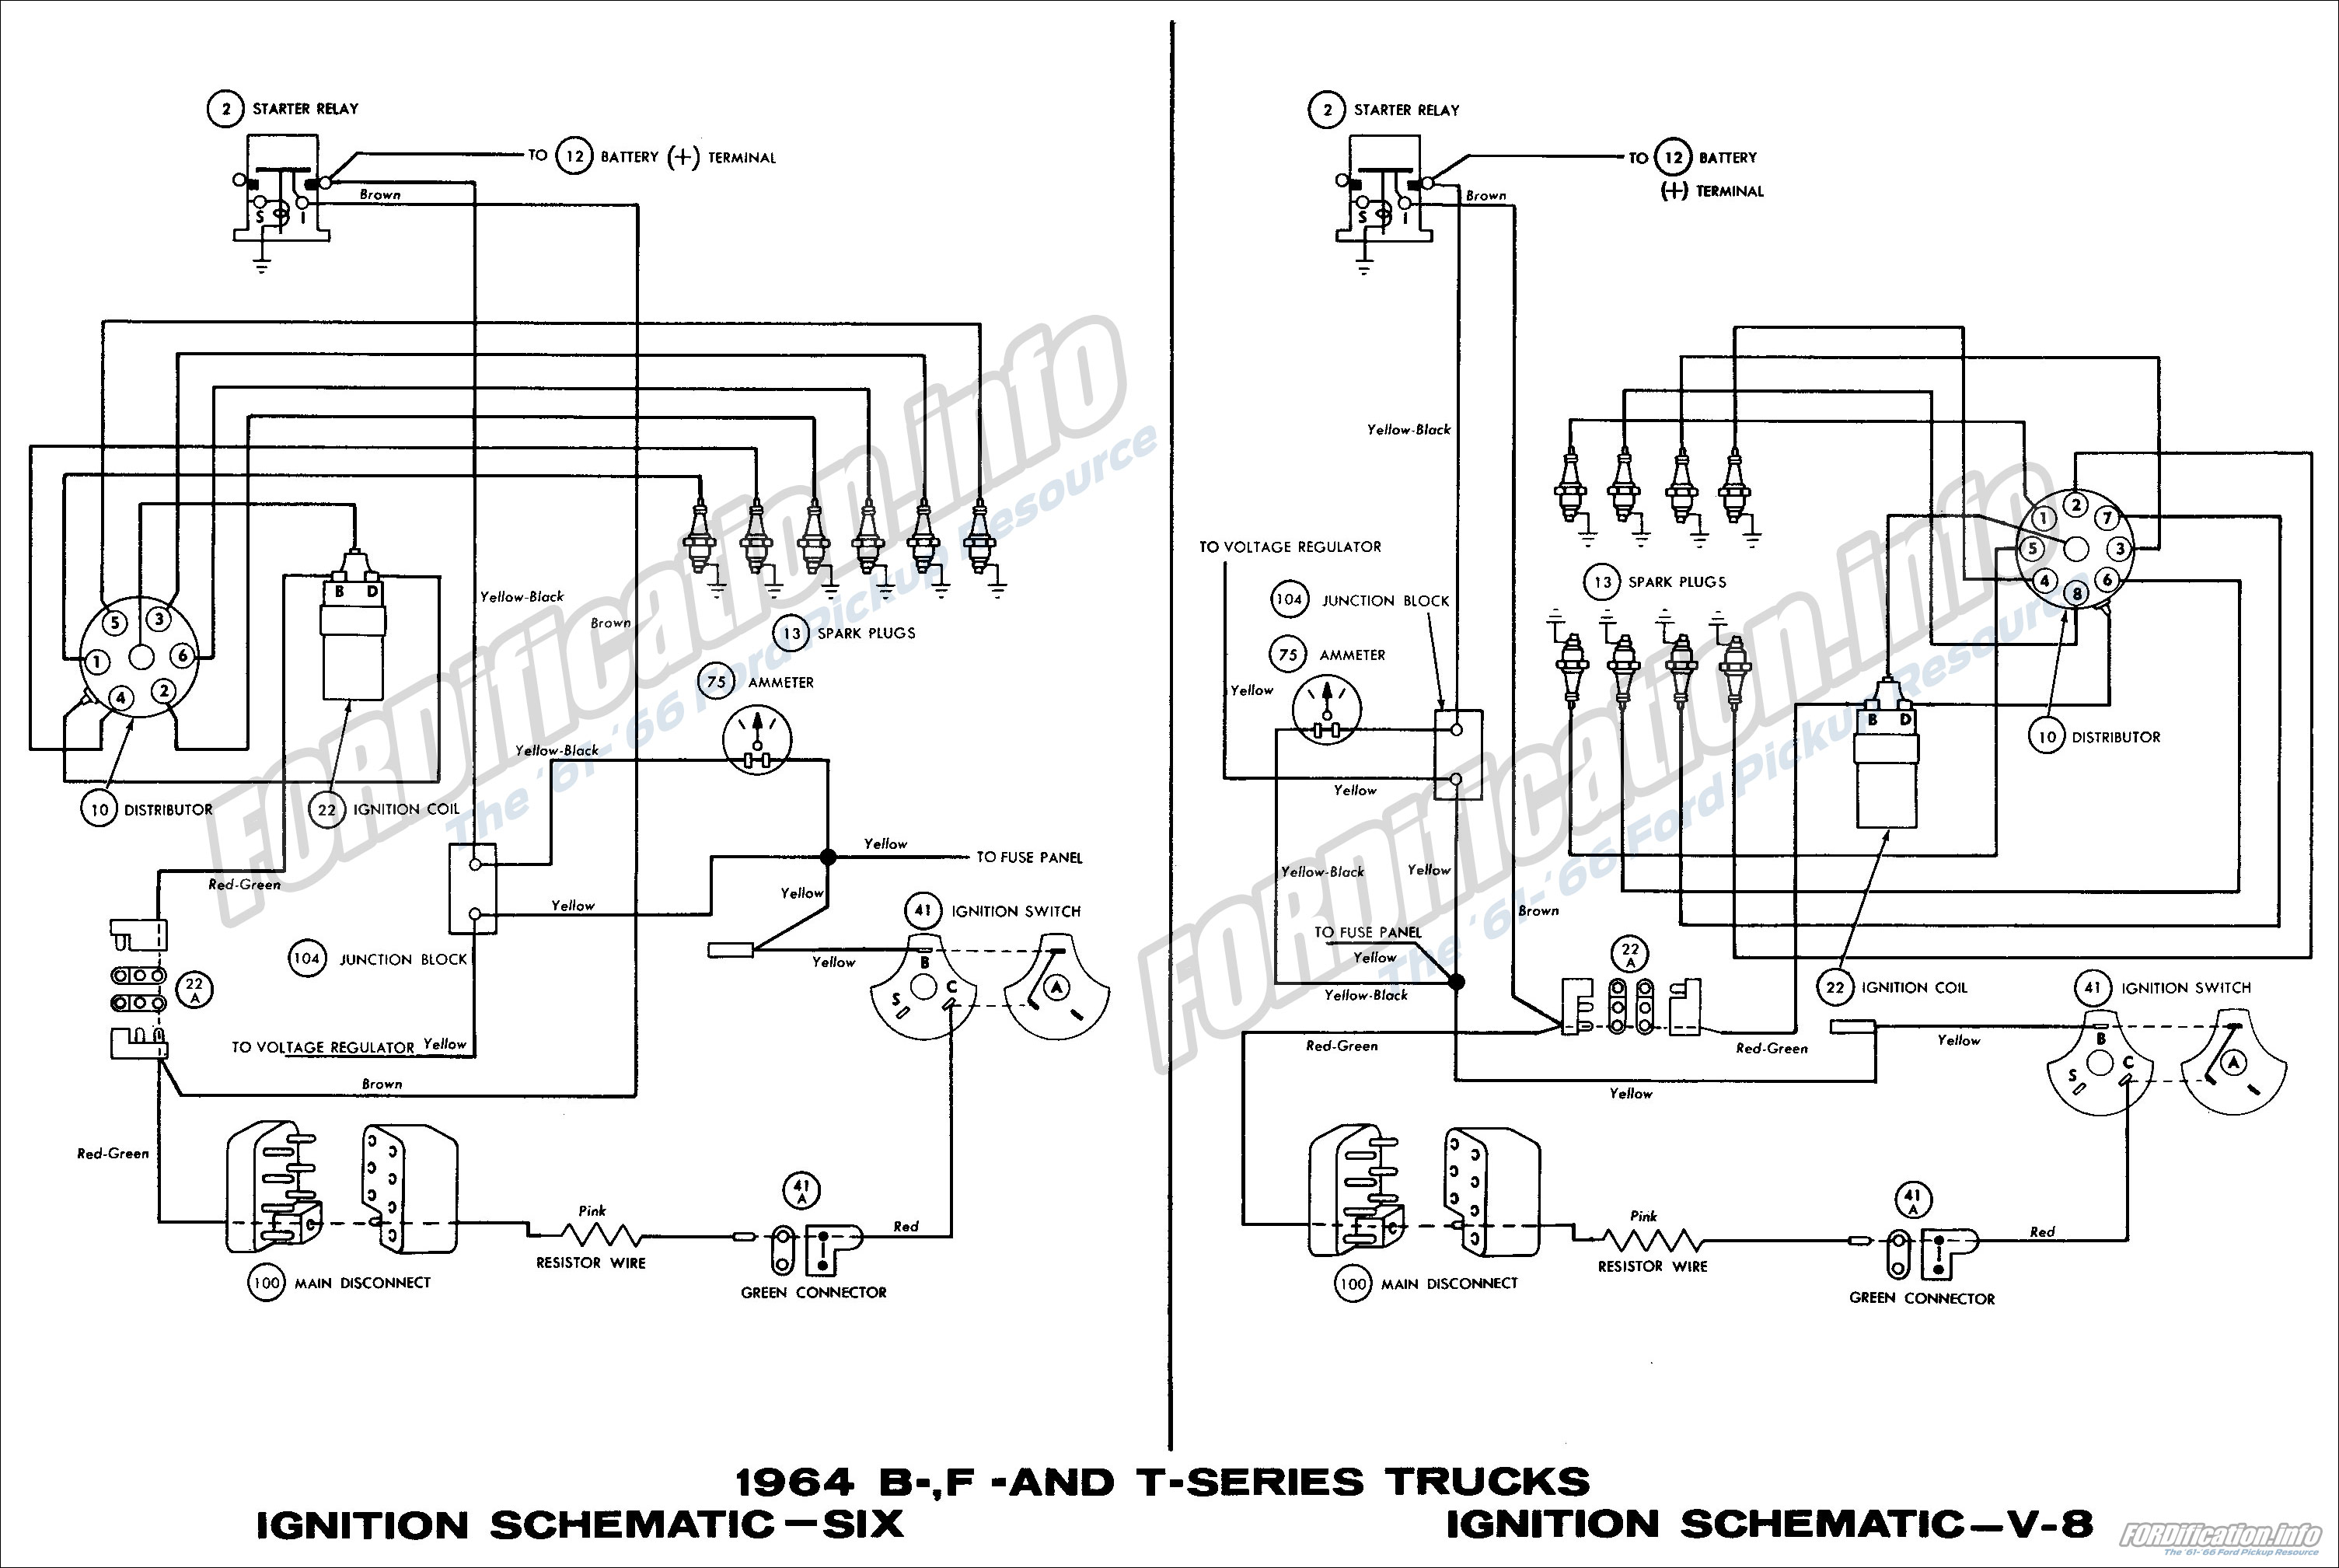 1964_03 wiring diagrams ford pickups the wiring diagram readingrat net Ford E 350 Wiring Diagrams at couponss.co